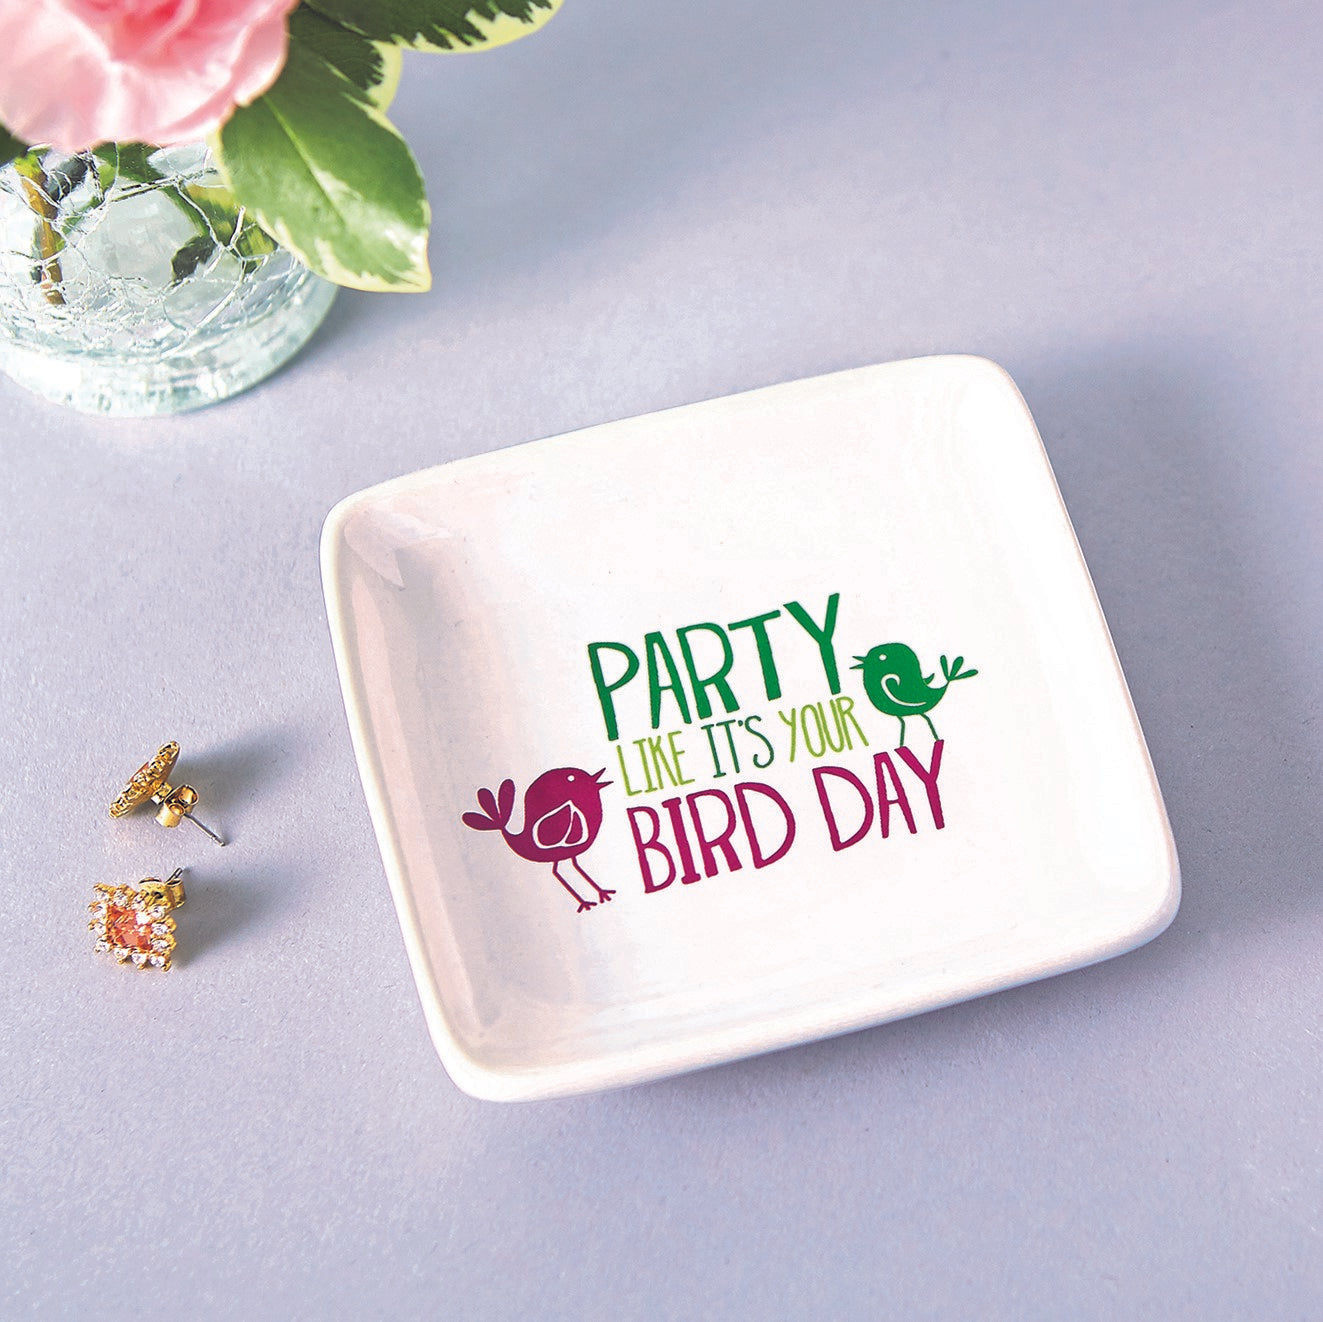 Bird Day Trinket Dish